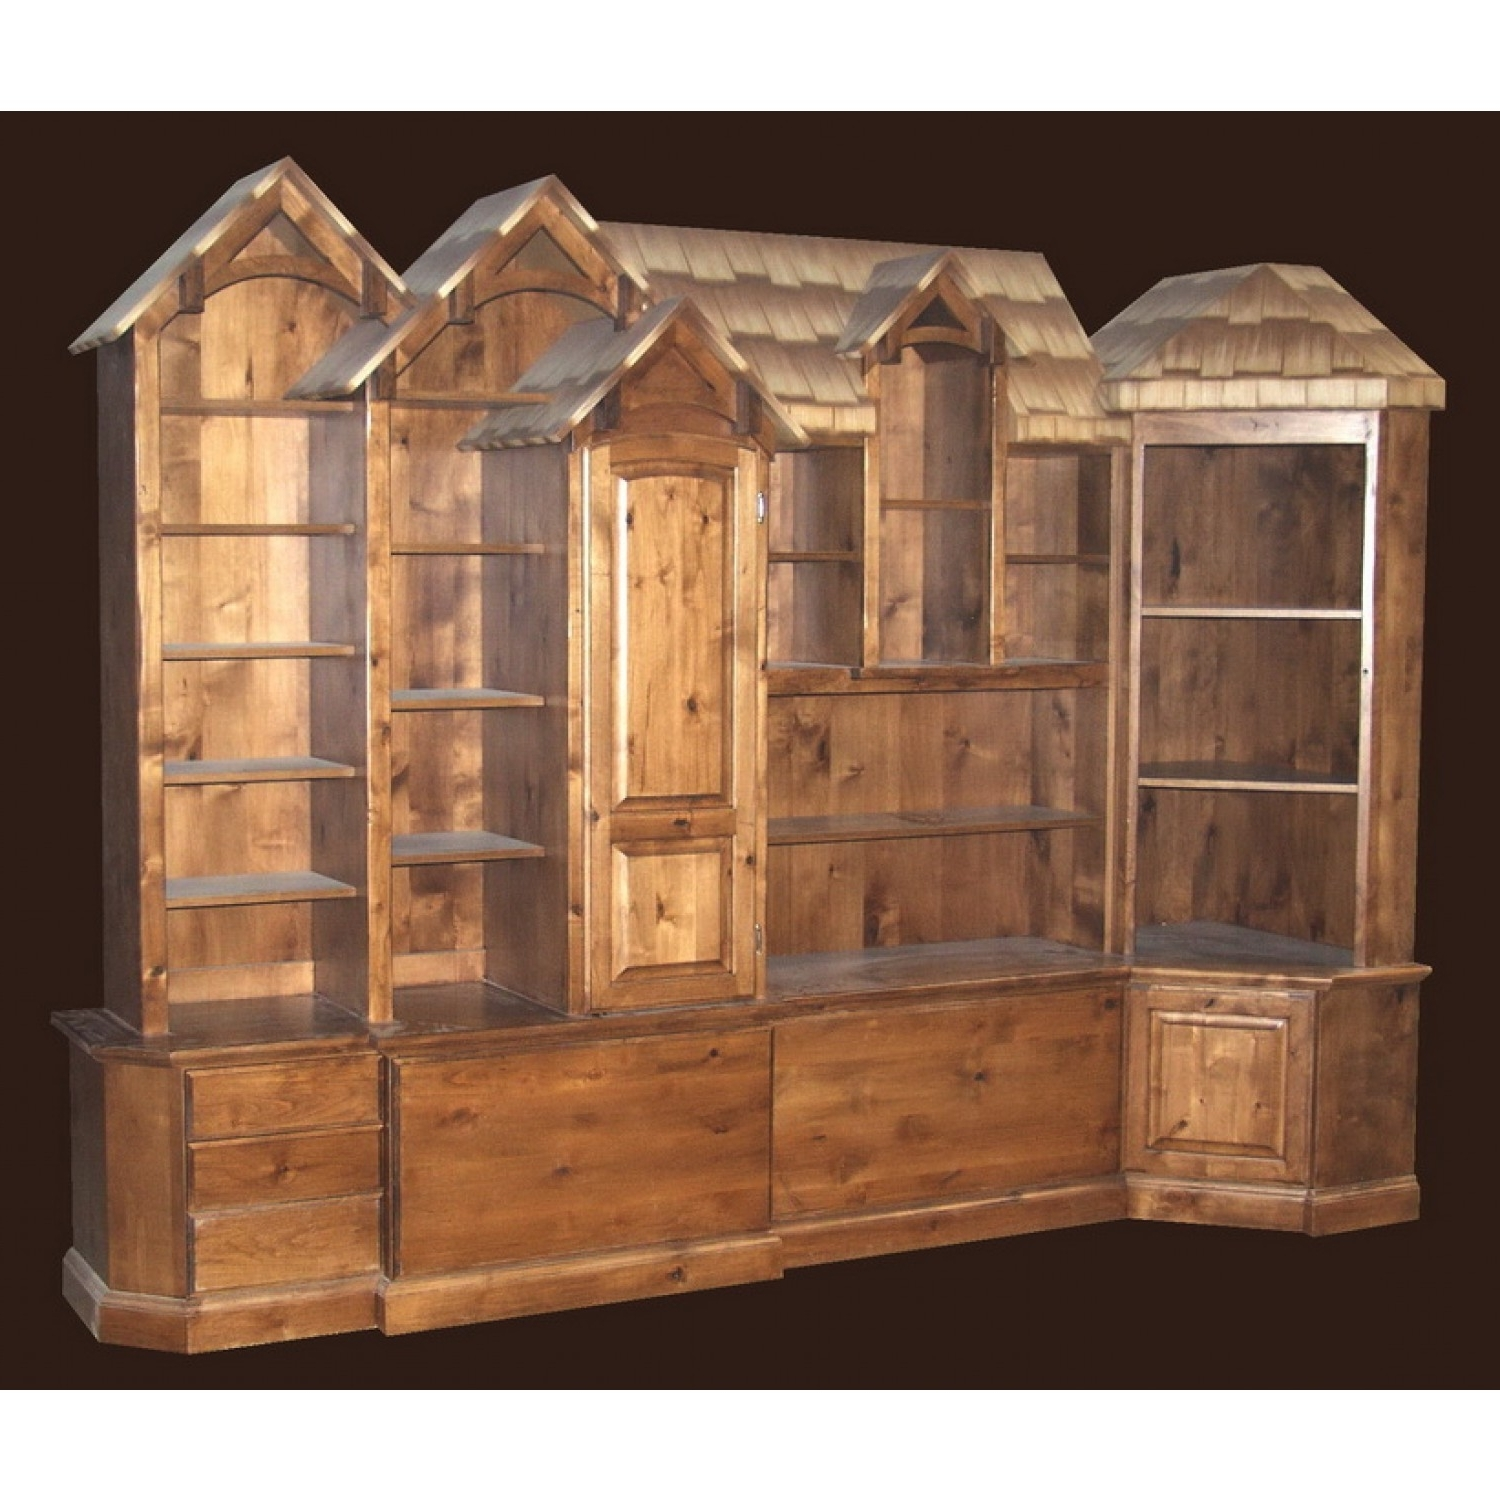 Rustic Bookcases With Most Up To Date Rustic Bookshelf (View 15 of 15)